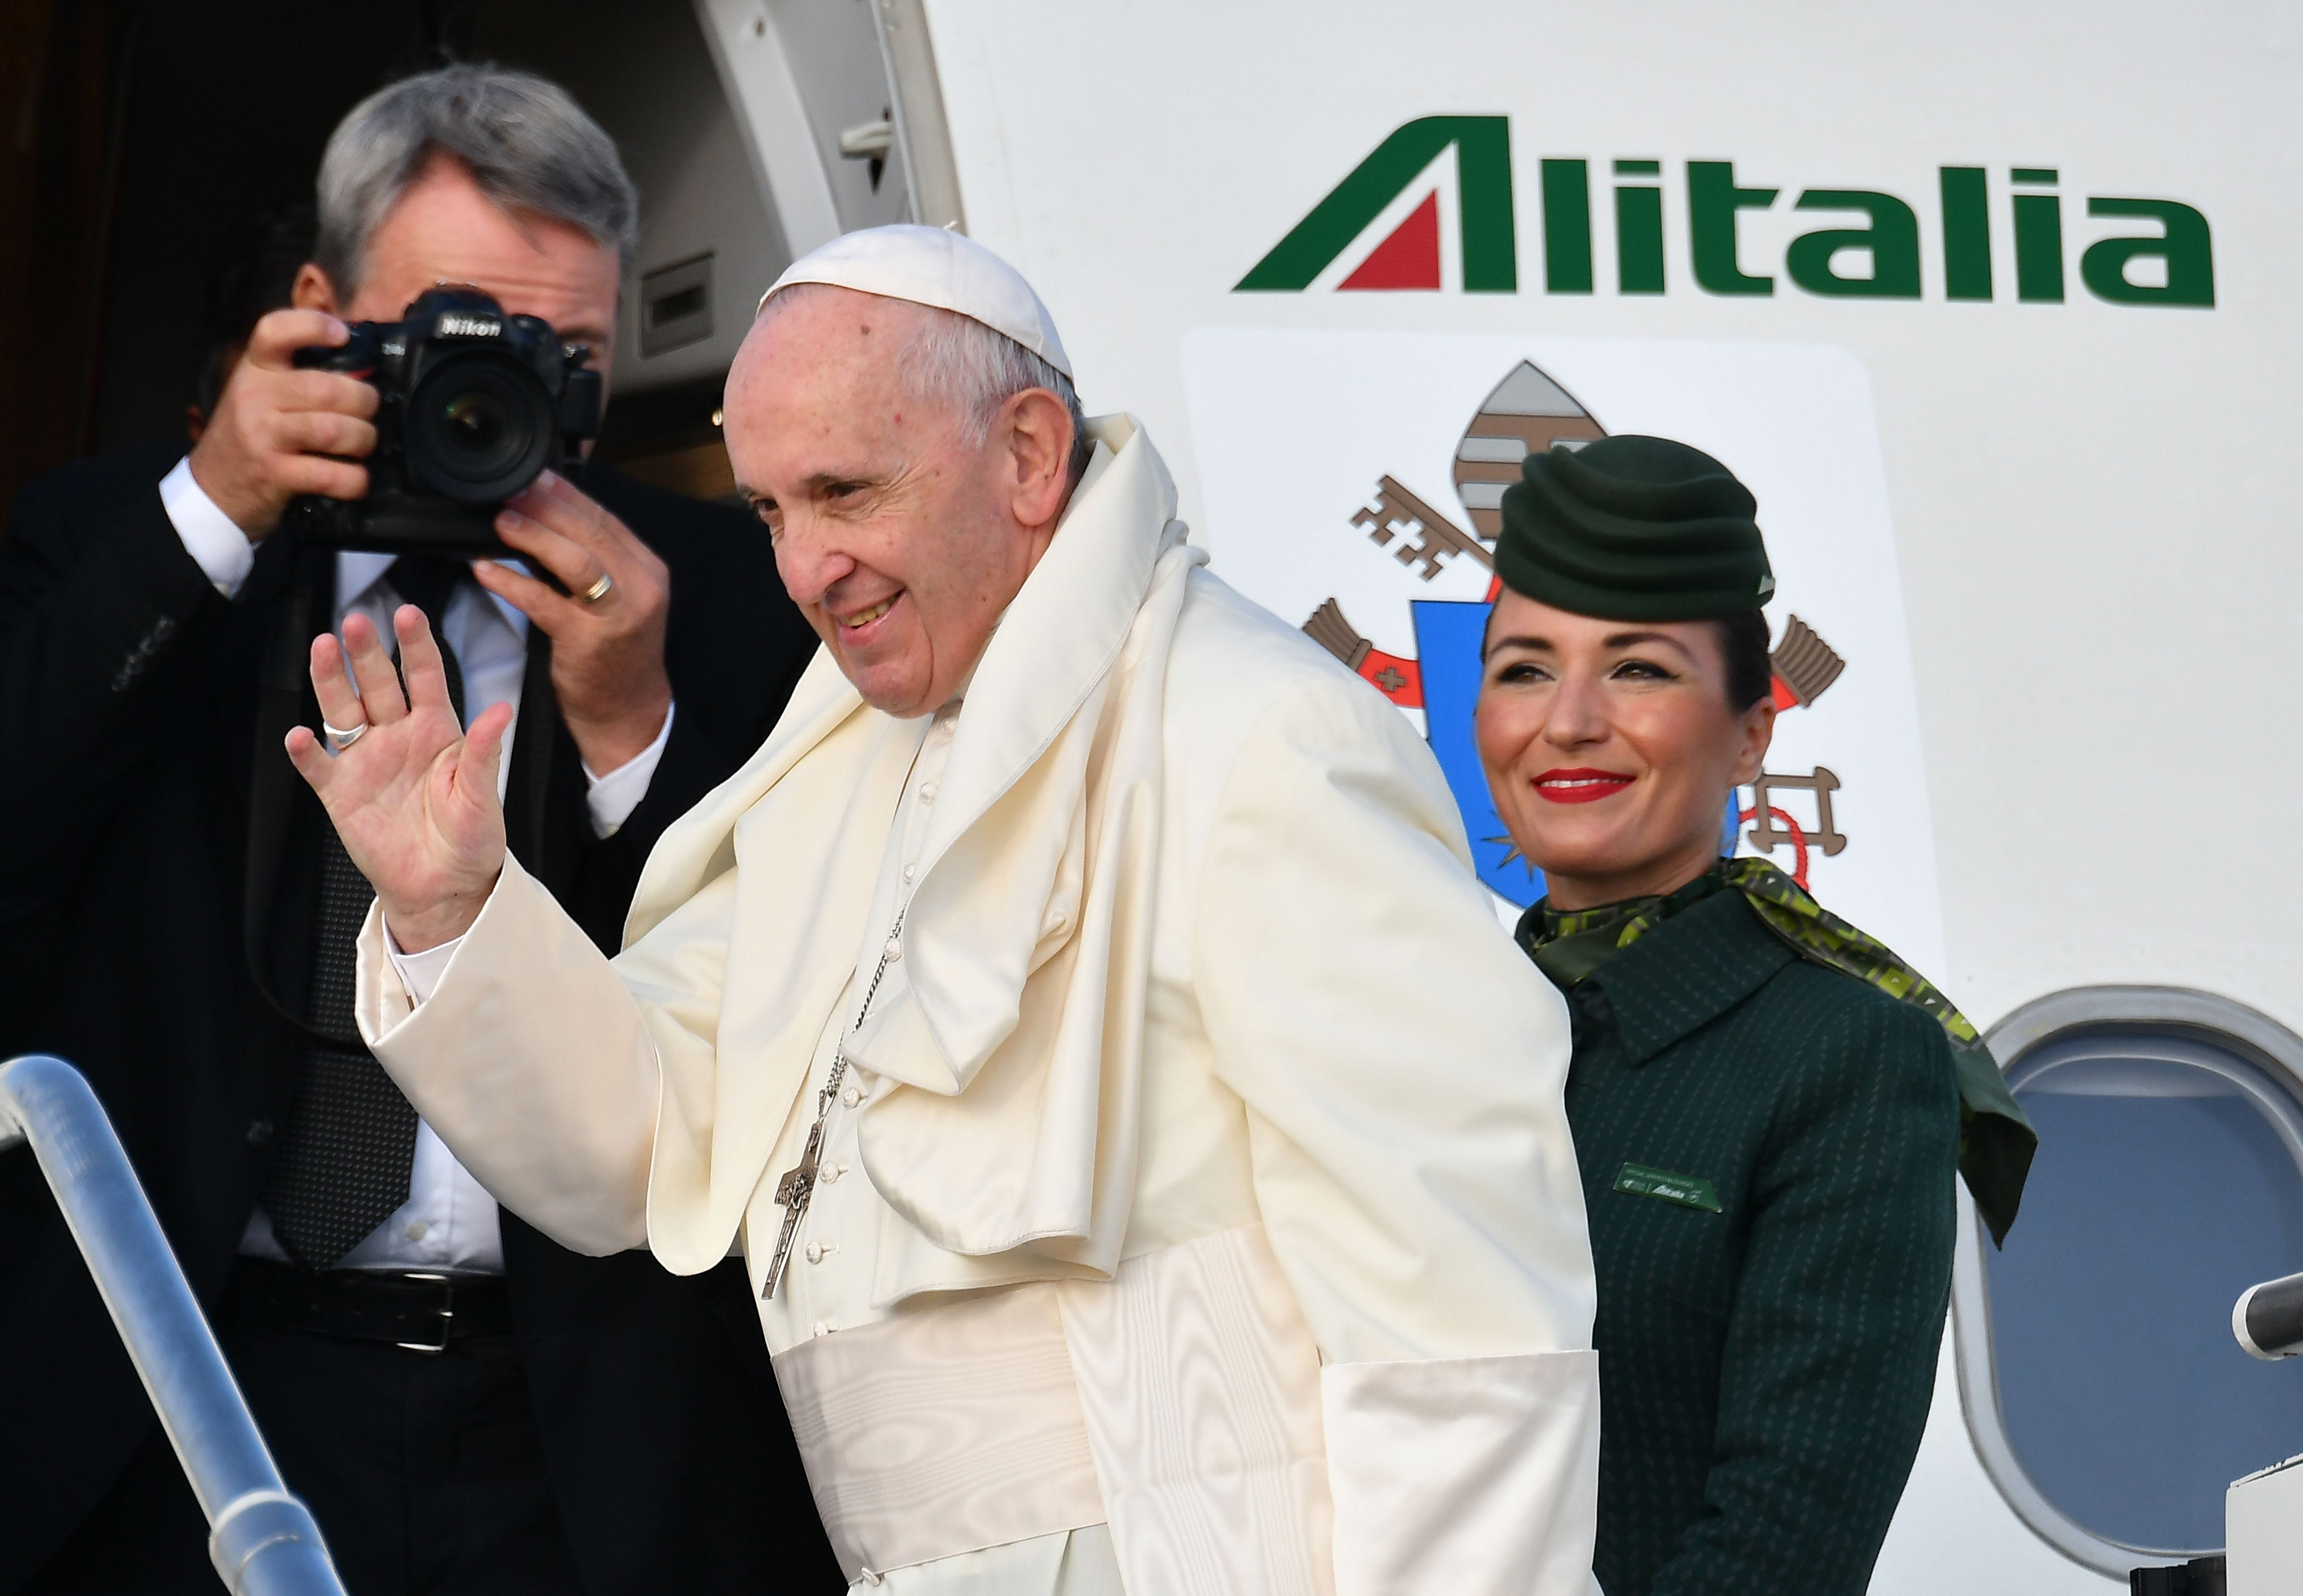 Pope Francis waves as he boards the plane on his way to the his two-day pastoral trip to Ireland.